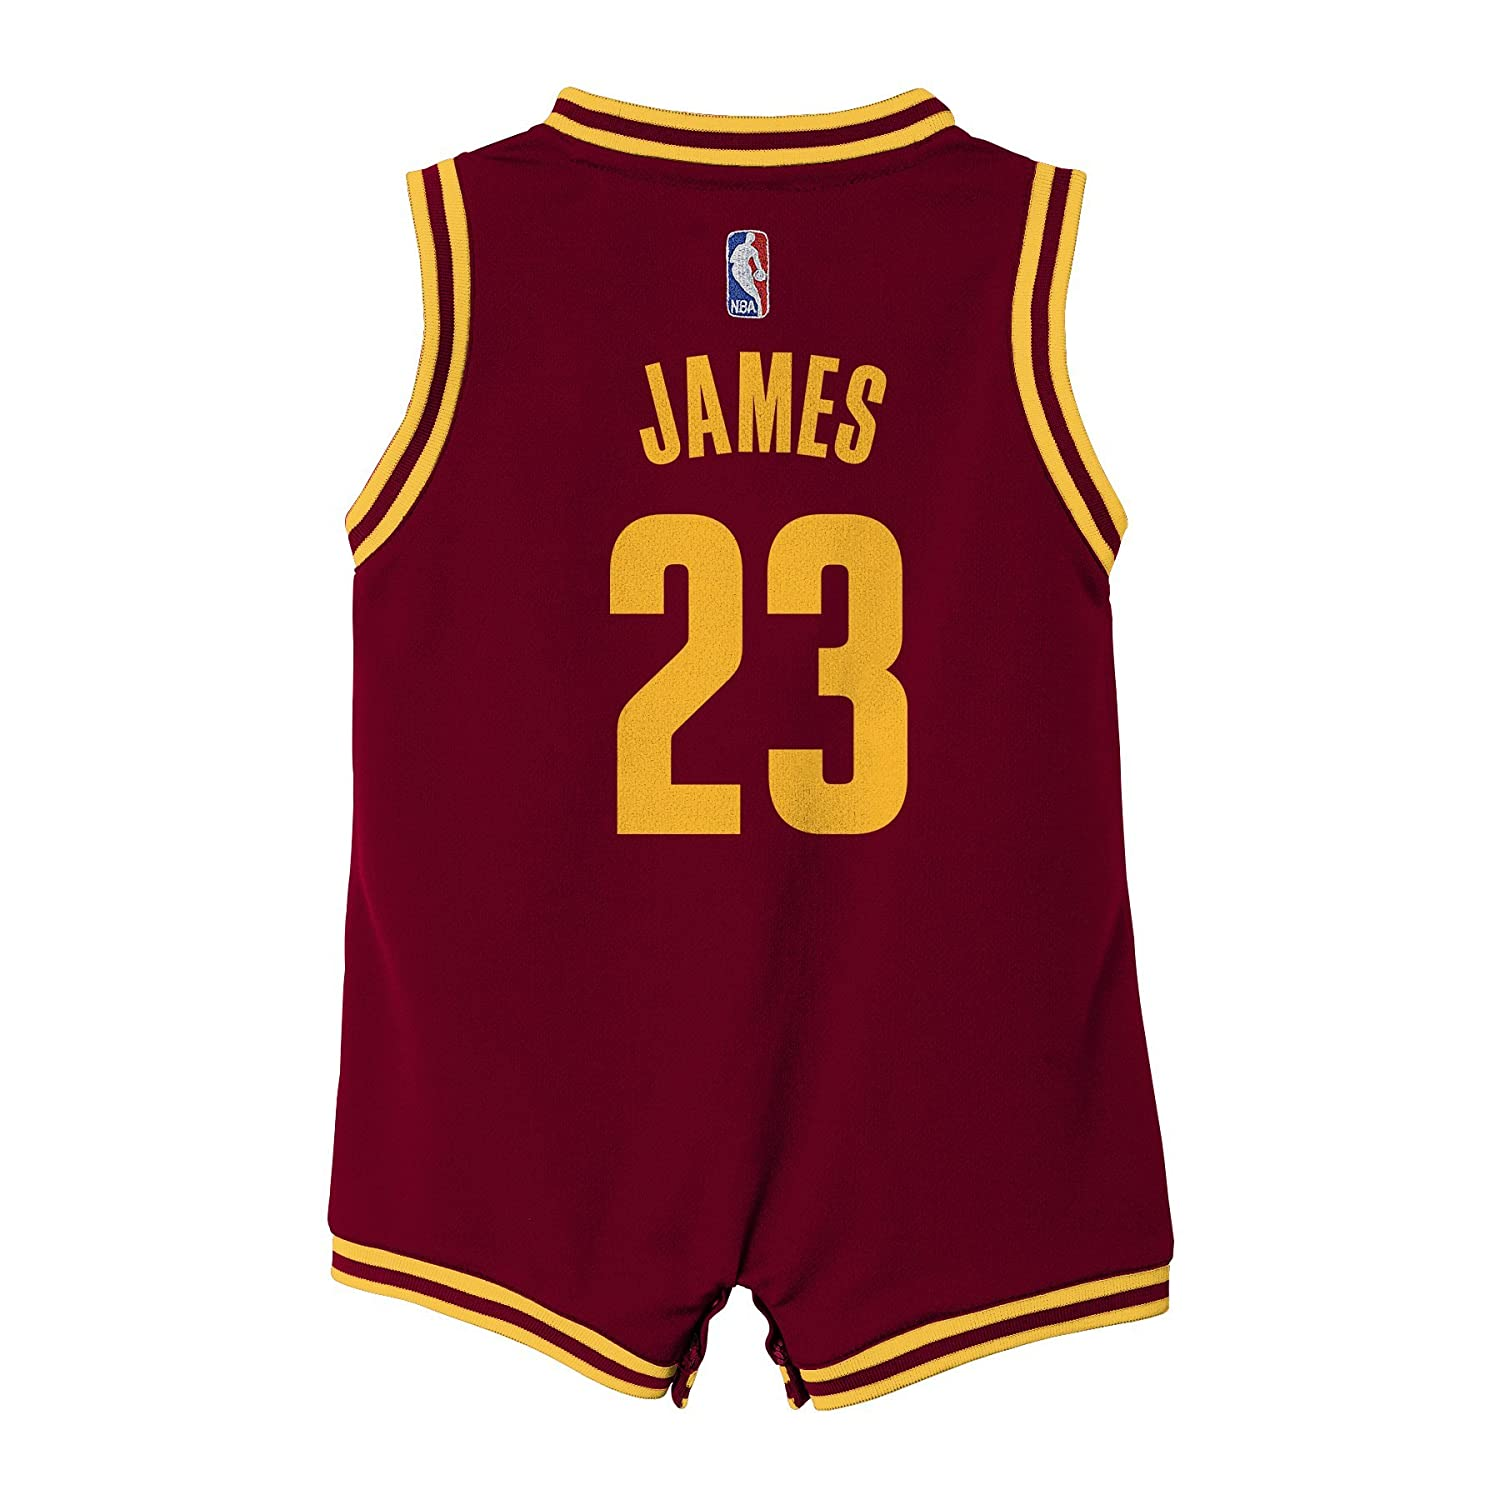 wholesale dealer 04da6 8d4a5 NBA Cleveland Cavaliers James Boys Infant Replica Road ...